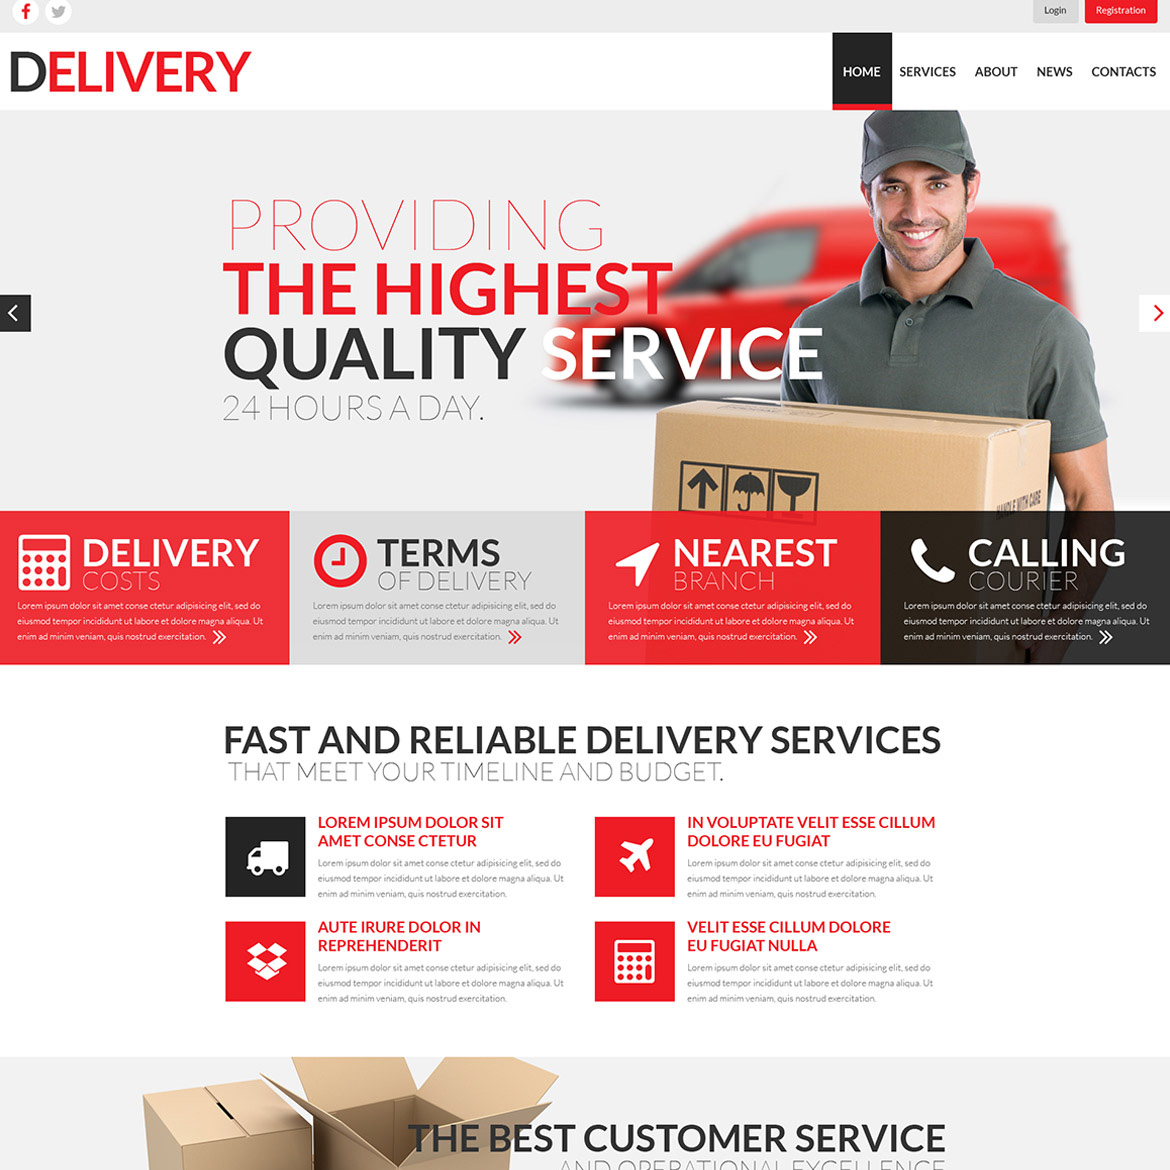 Live preview for Djuci - Web Design Agency Joomla Template #61208